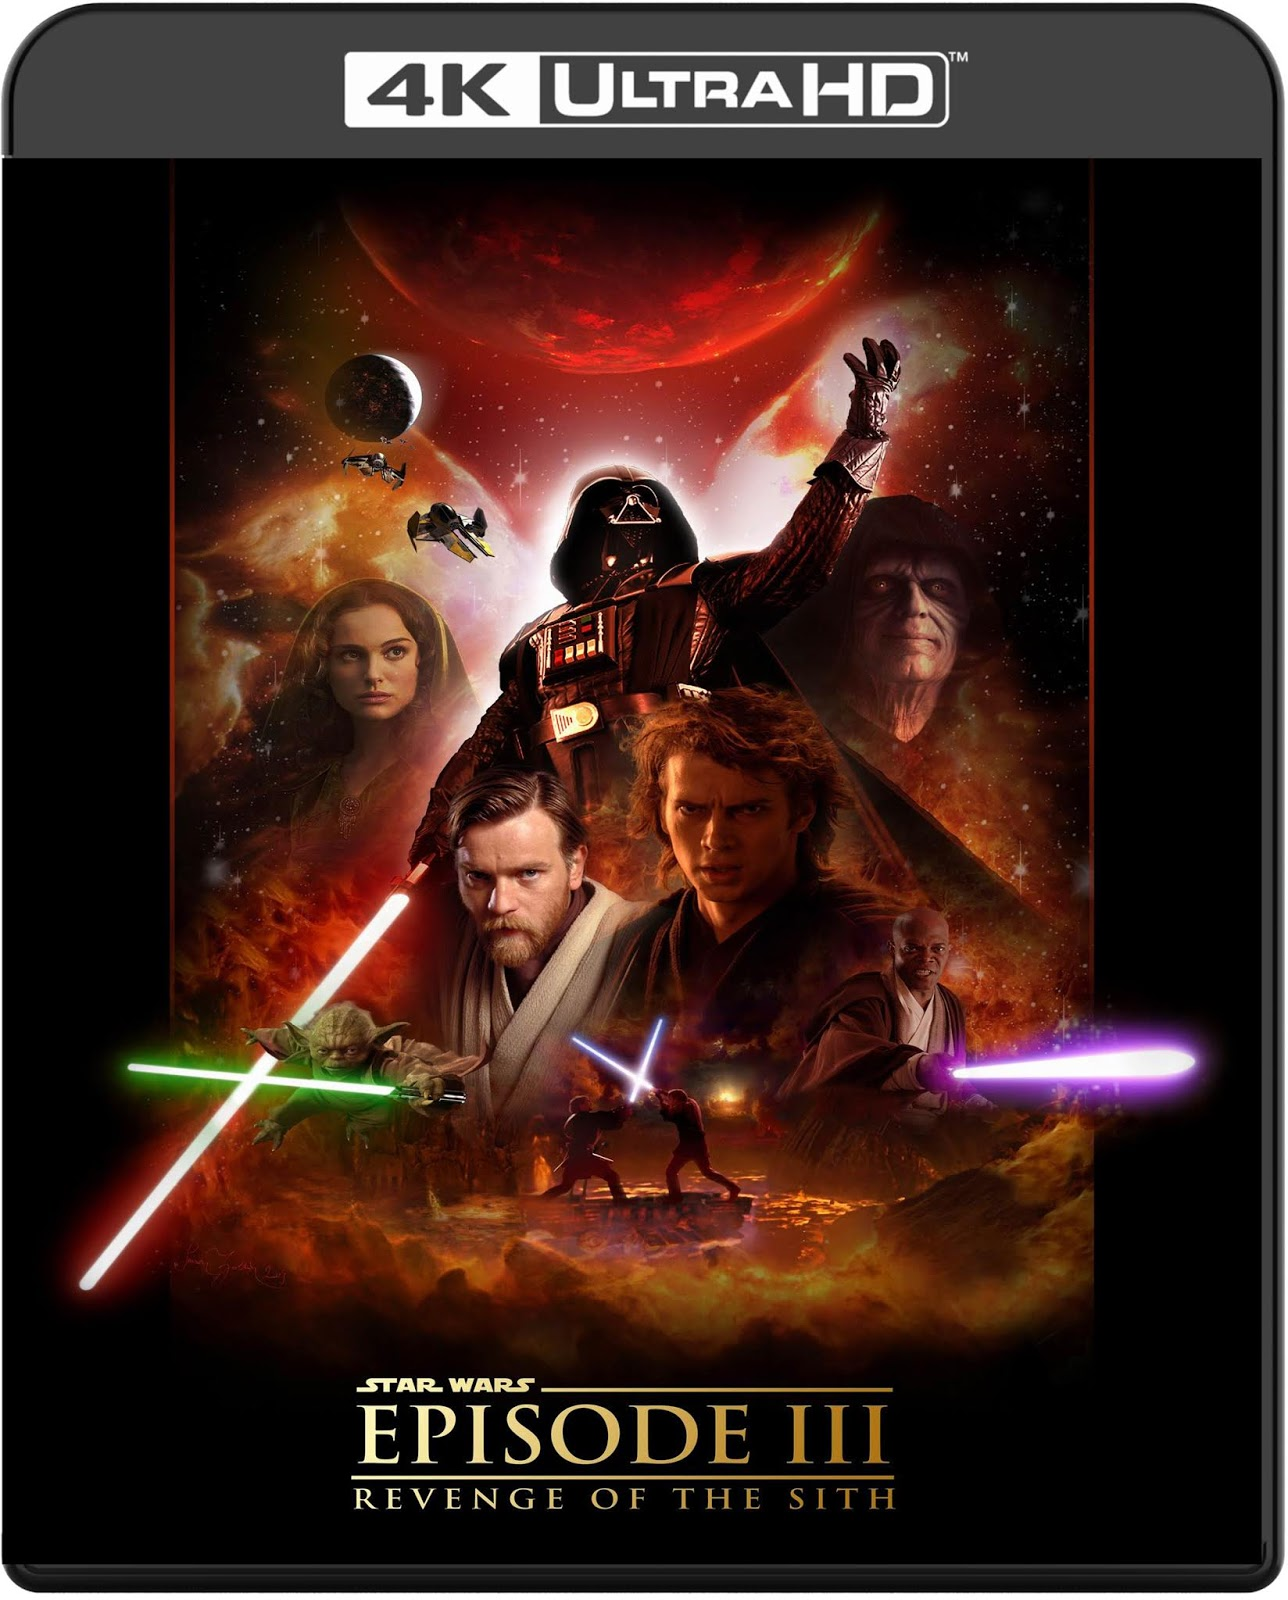 Star Wars: Episode III Revenge of the Sith [2005] [UHD] [2160p] [Latino]